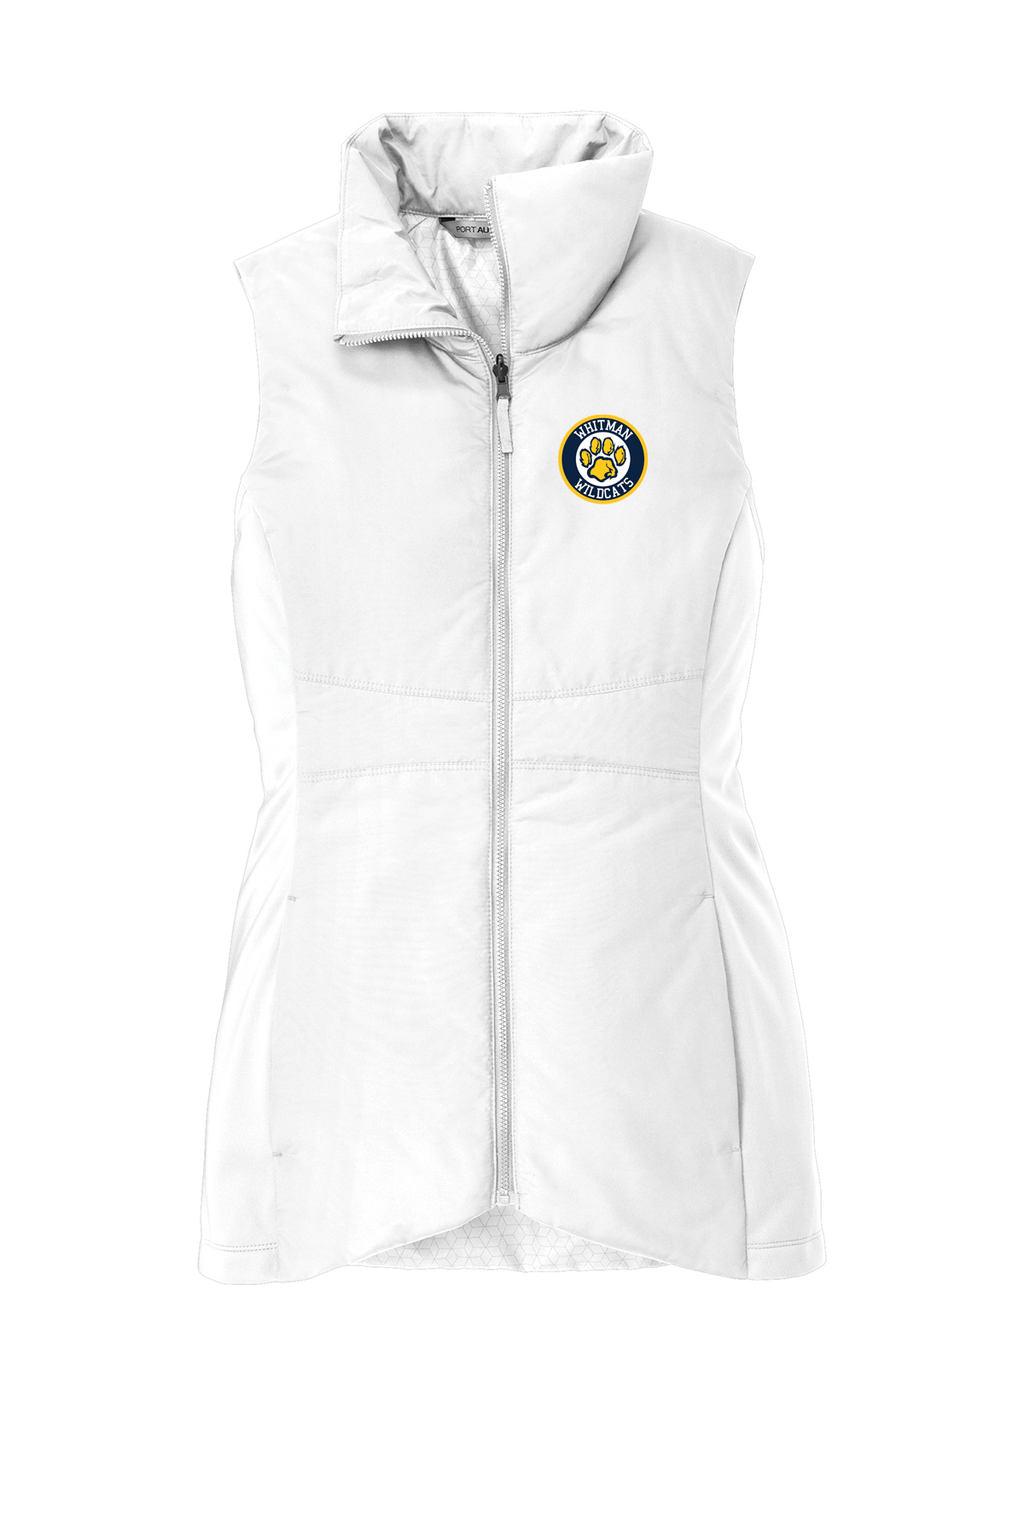 Whitman Wildcats Women's Vest